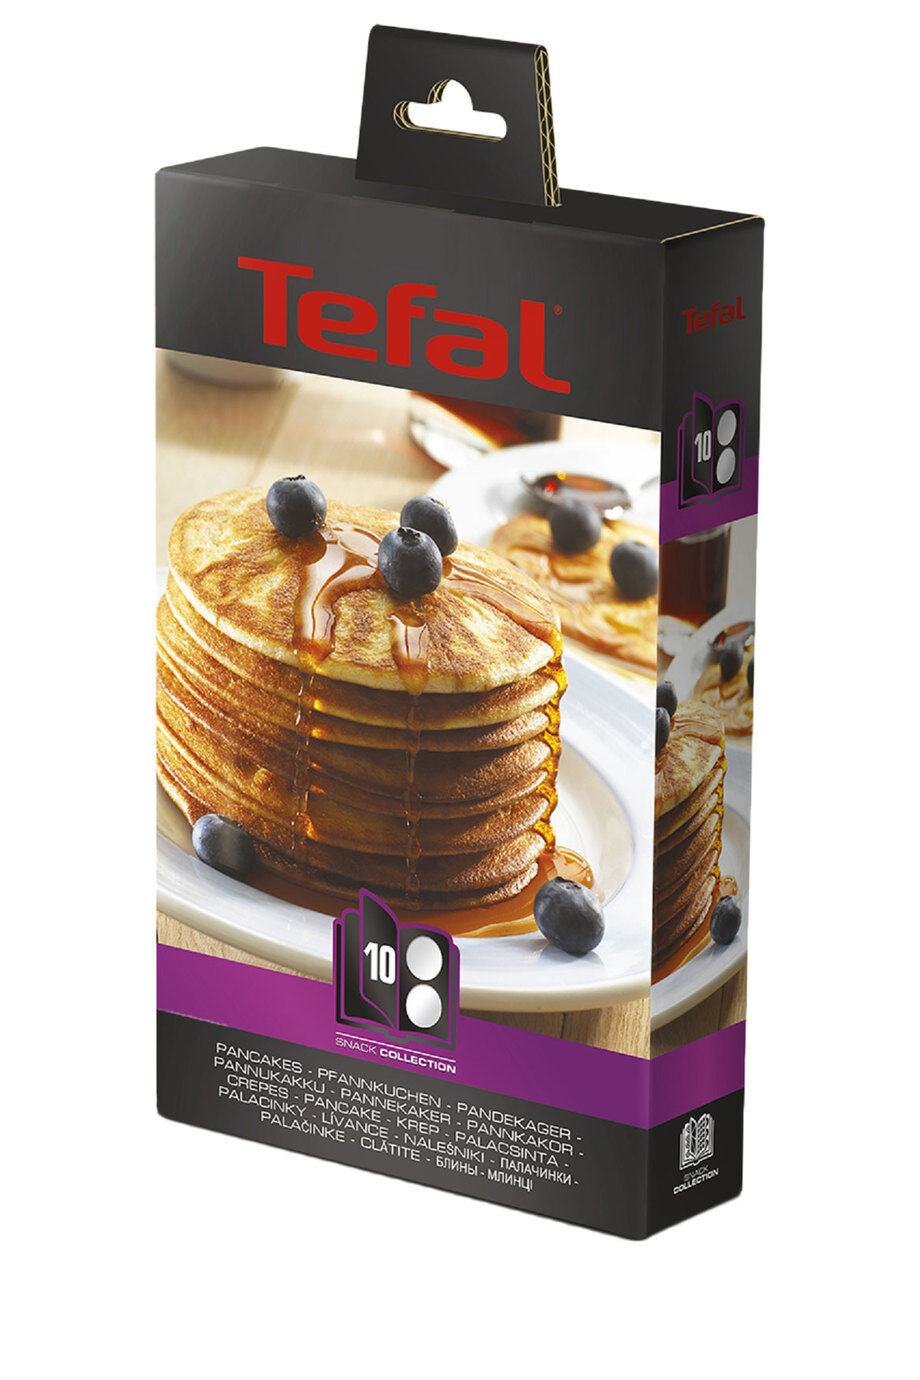 new tefal xa8010 pancake plates attachment for snack collection sw852d aud picclick au. Black Bedroom Furniture Sets. Home Design Ideas